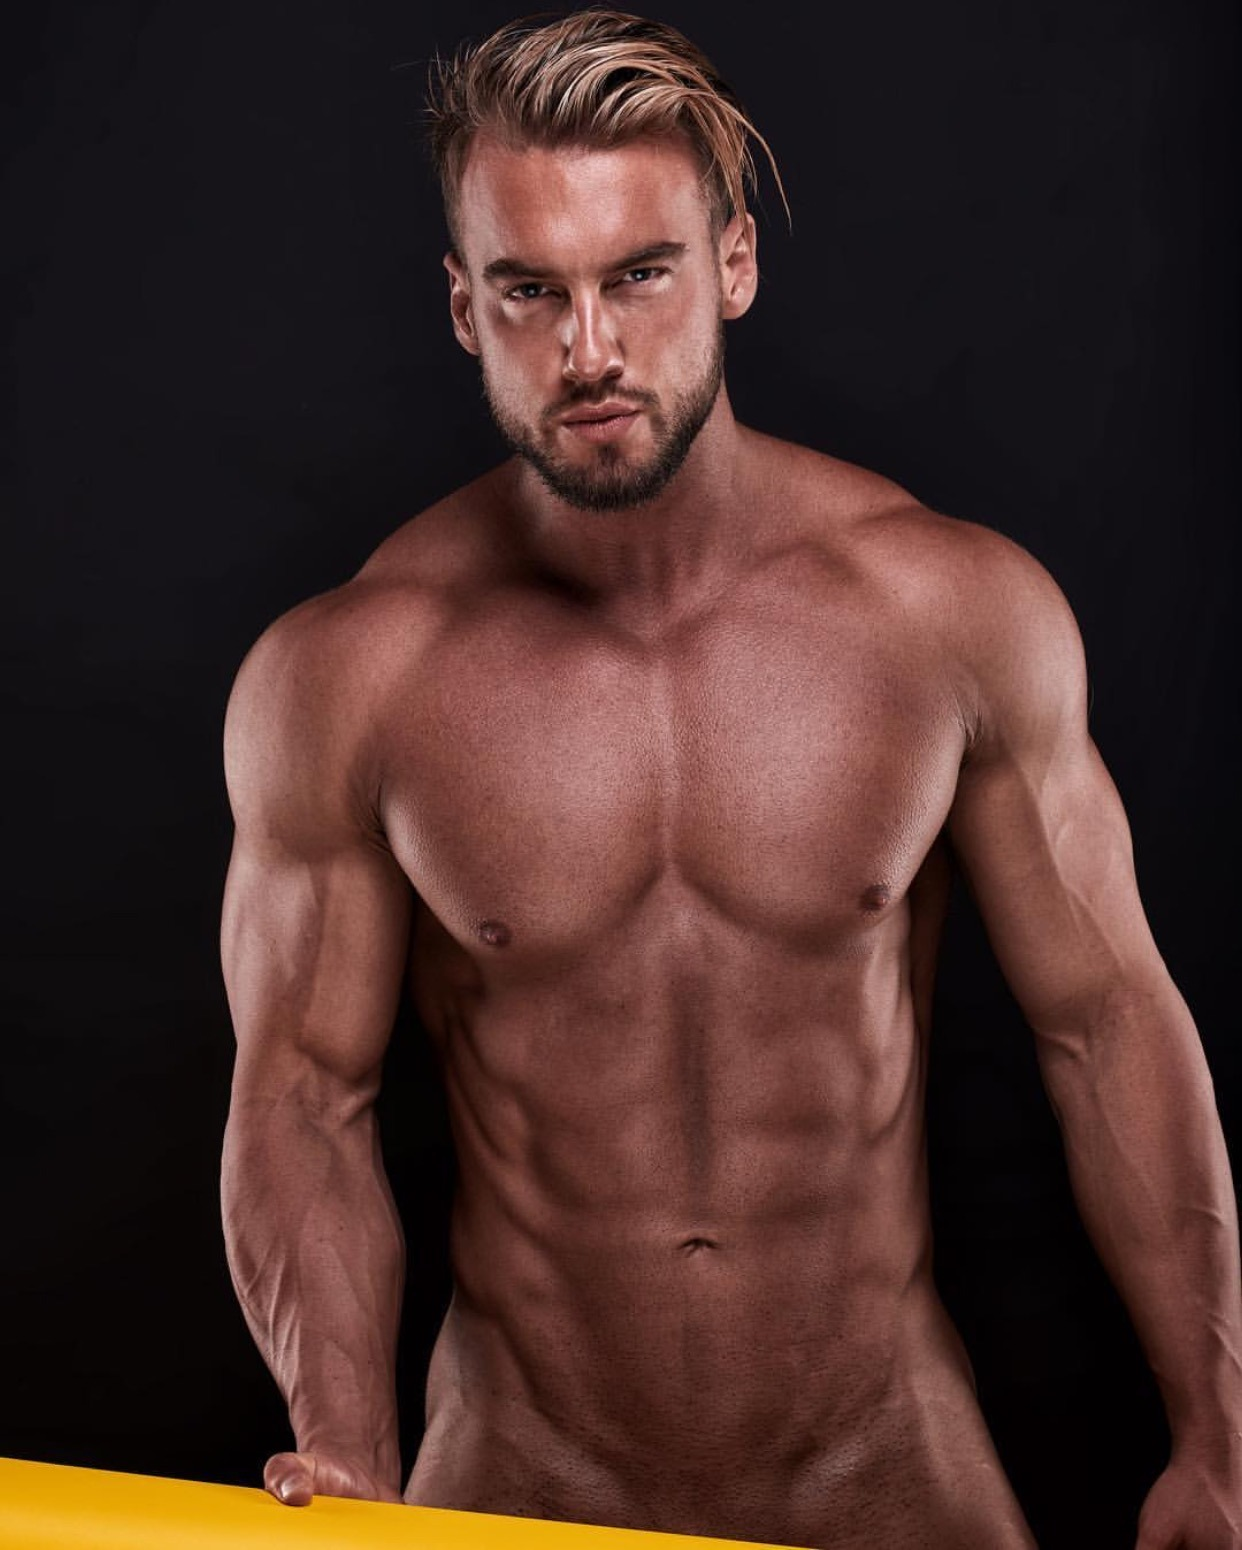 man-naked-fitness-men-naked-mythbuster